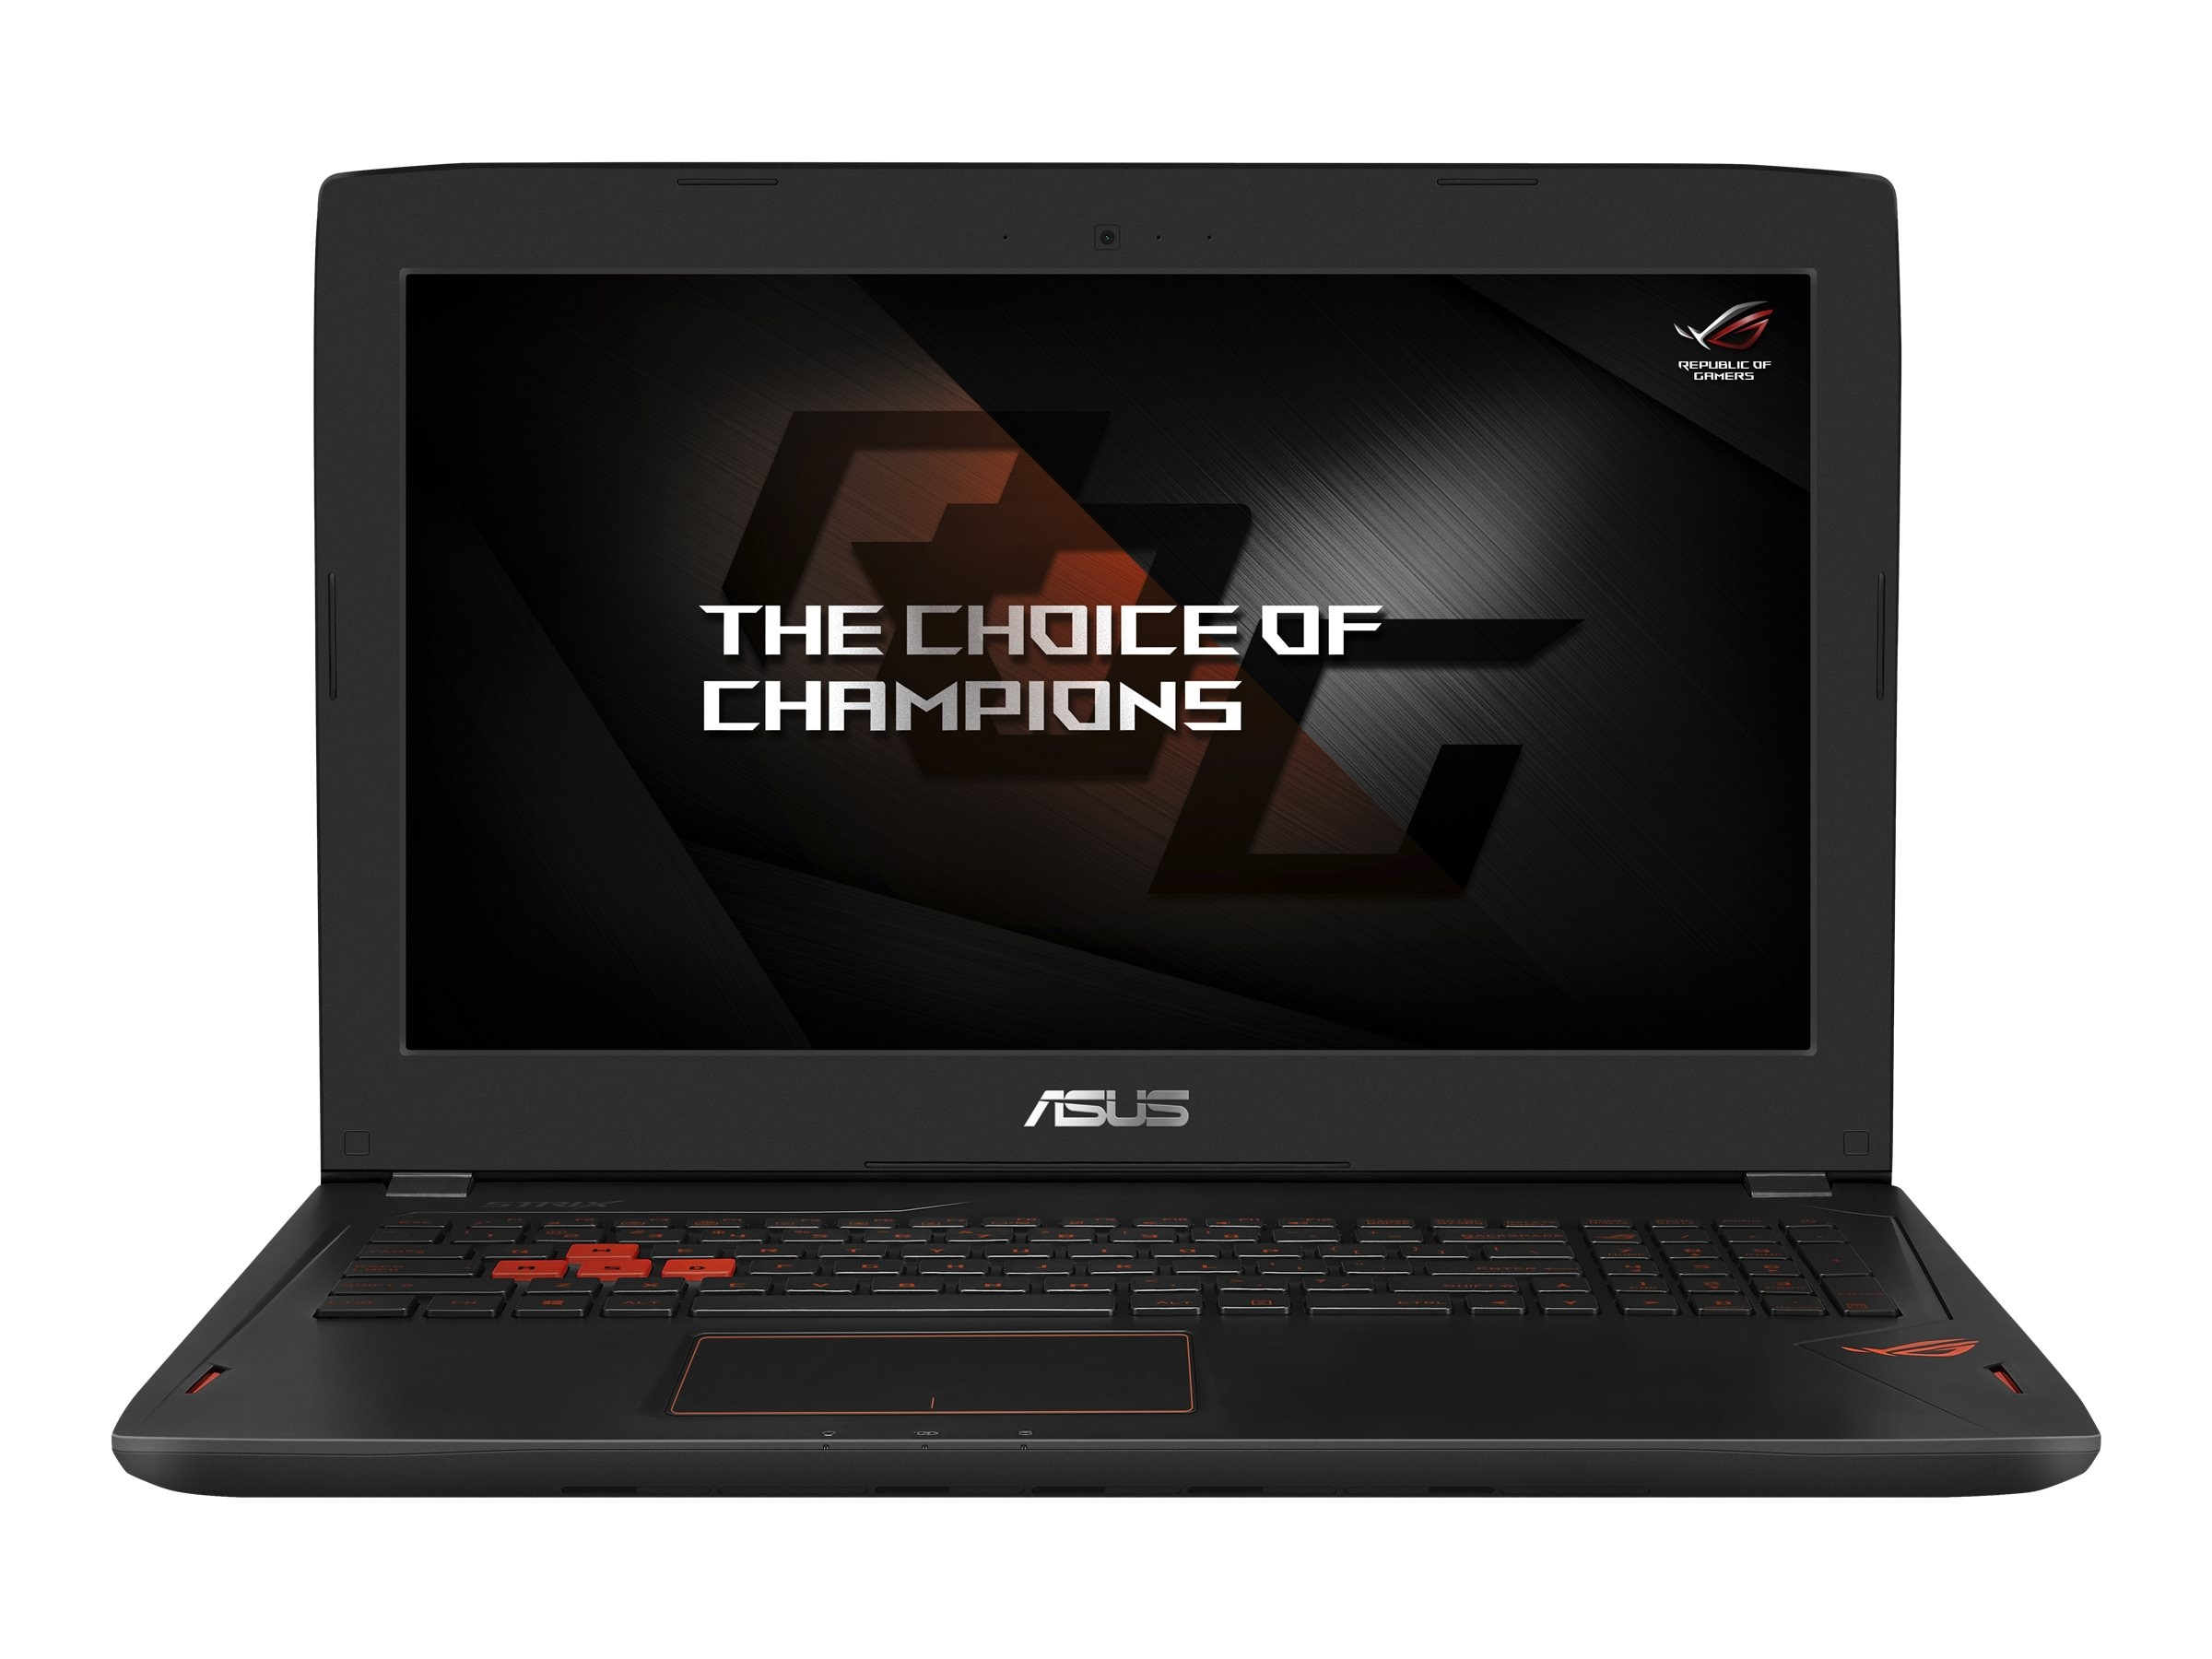 Asus GL502VS-DB71 Core i7-6700 3.4GHz 16GB 256GB 15.6 W10, GL502VS-DB71